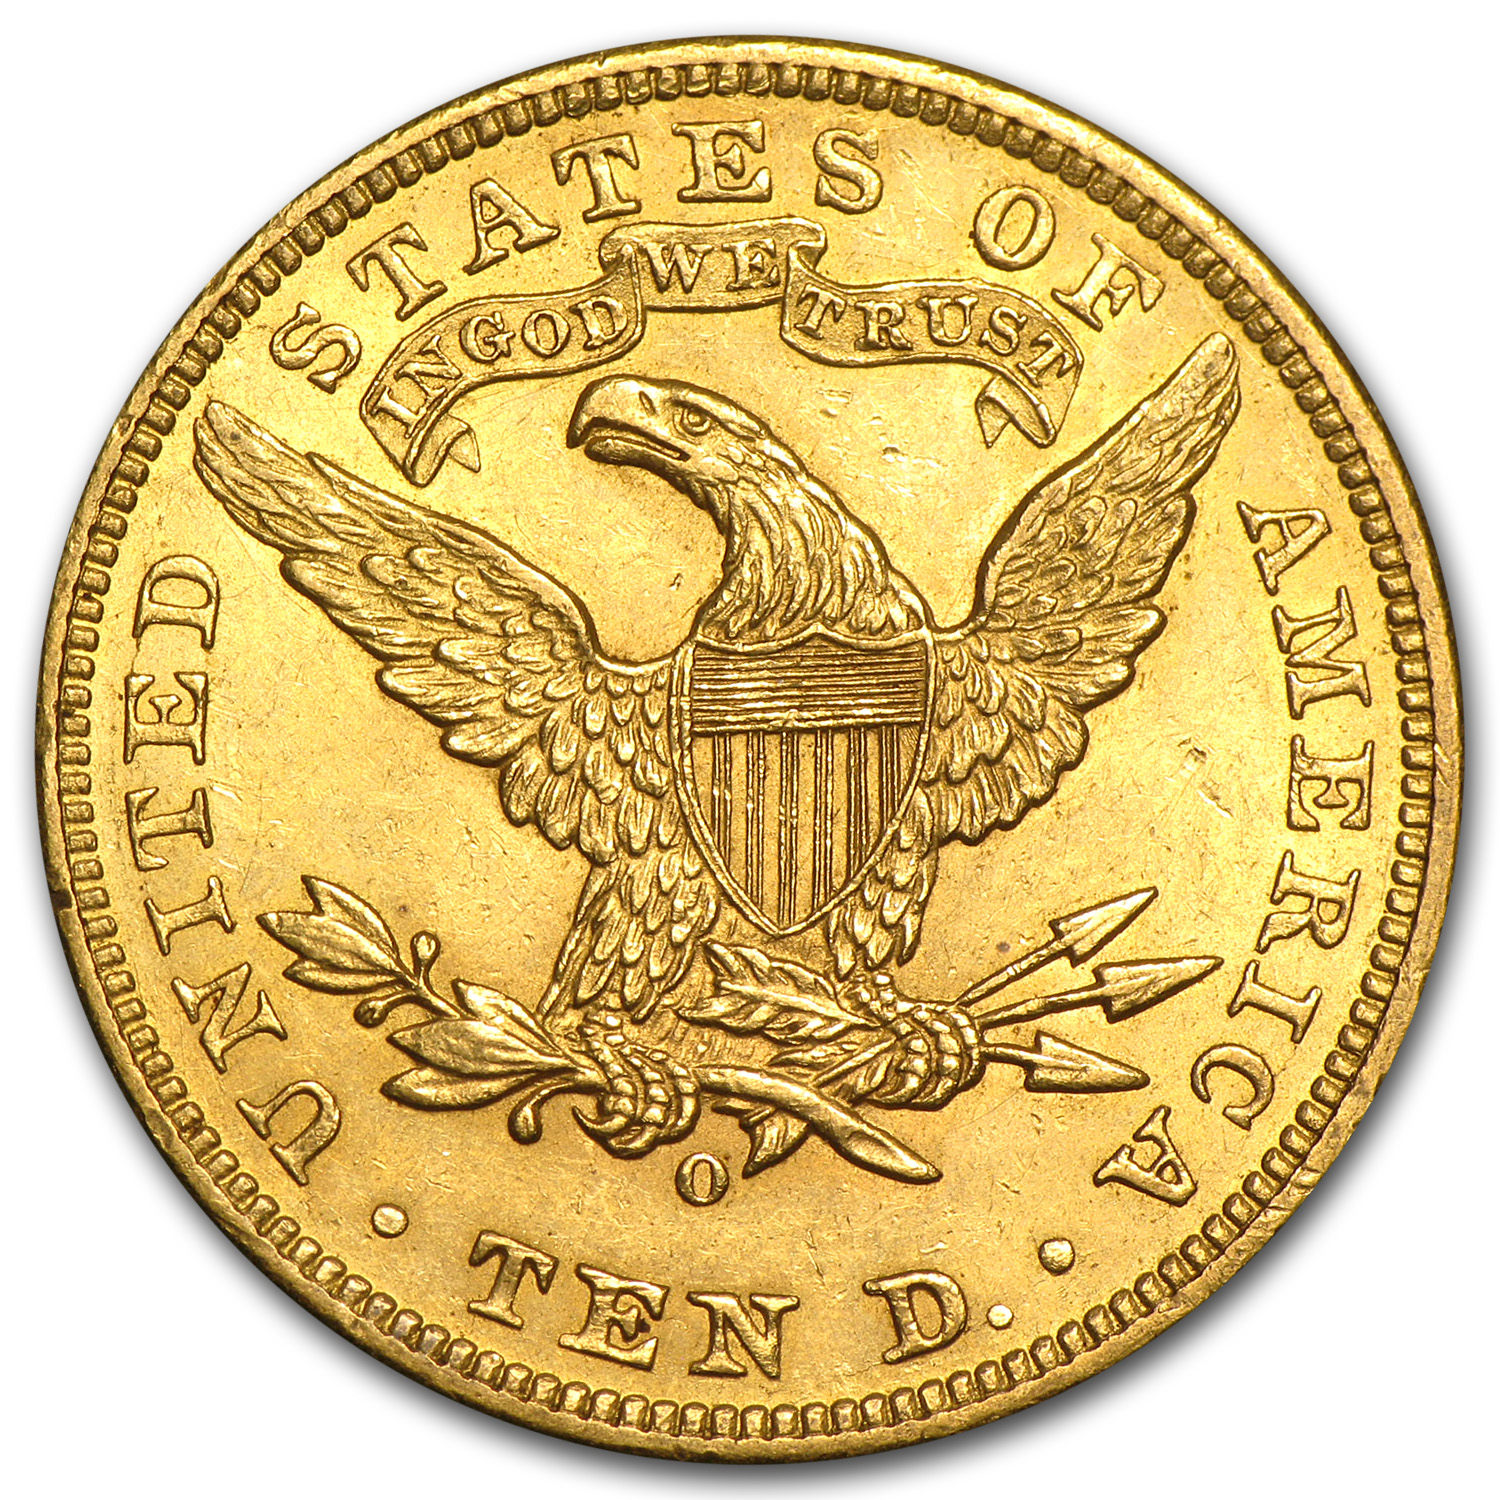 1904-O $10 Liberty Gold Eagle - Almost Uncirculated